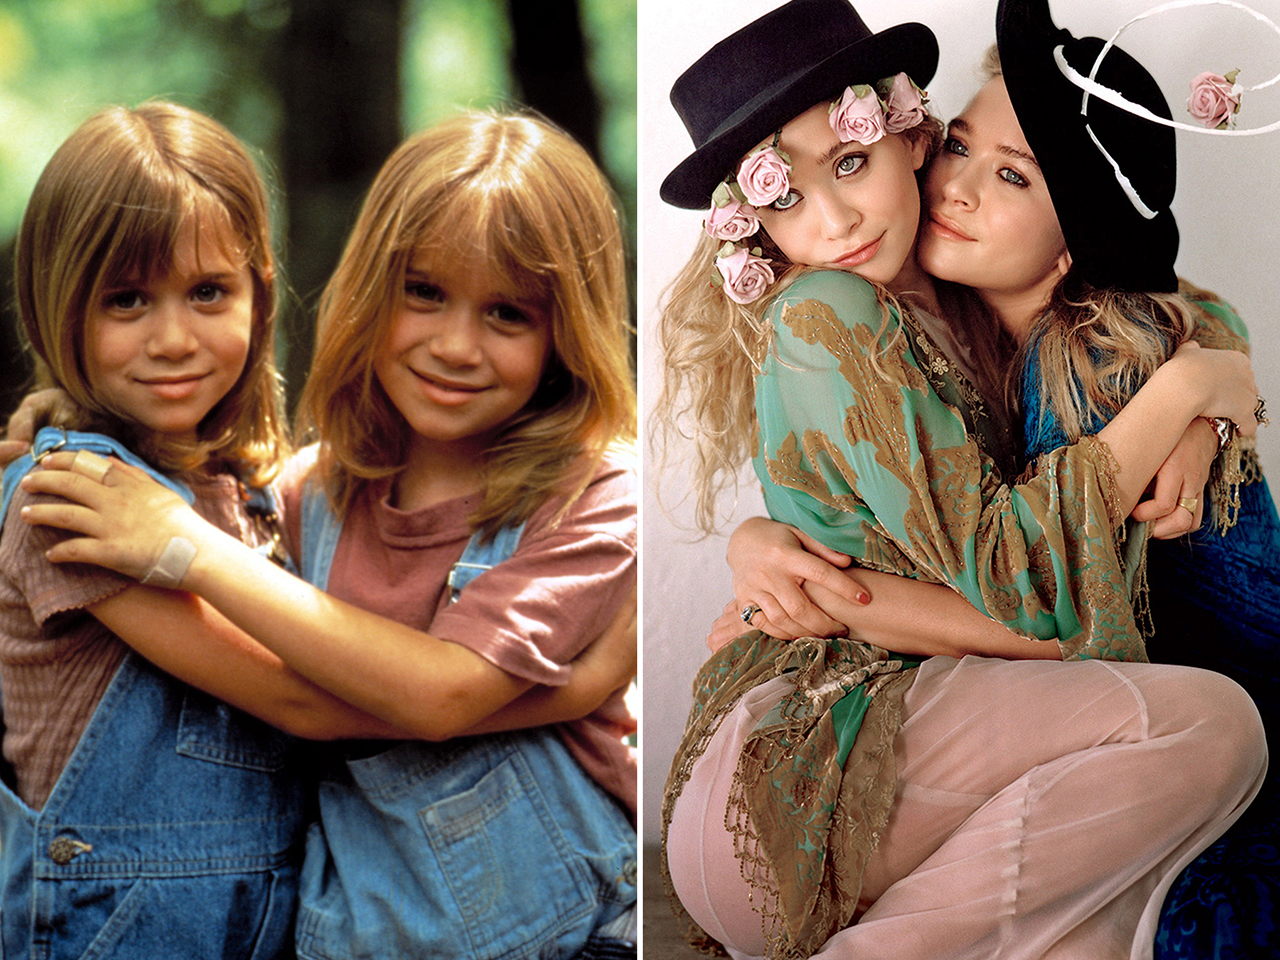 You won't recognize some of these former child stars ...